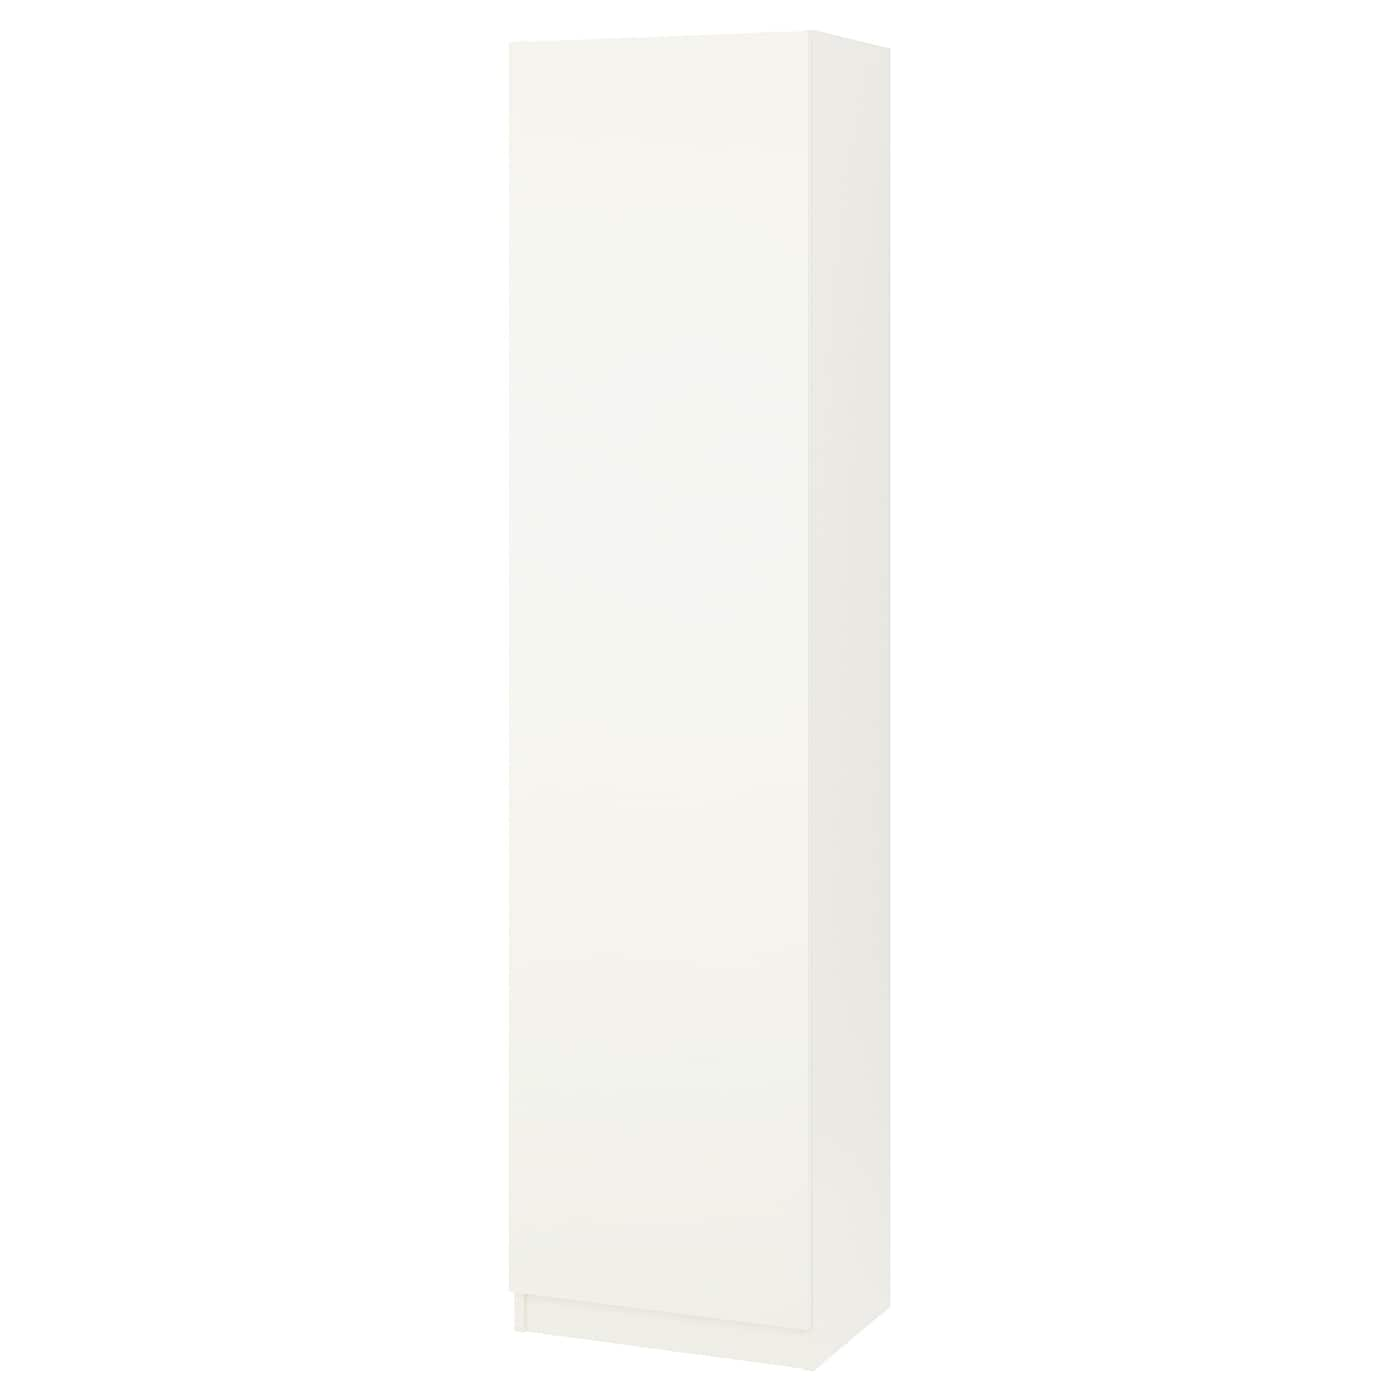 pax armoire penderie blanc forsand blanc 50 x 38 x 201 cm ikea. Black Bedroom Furniture Sets. Home Design Ideas